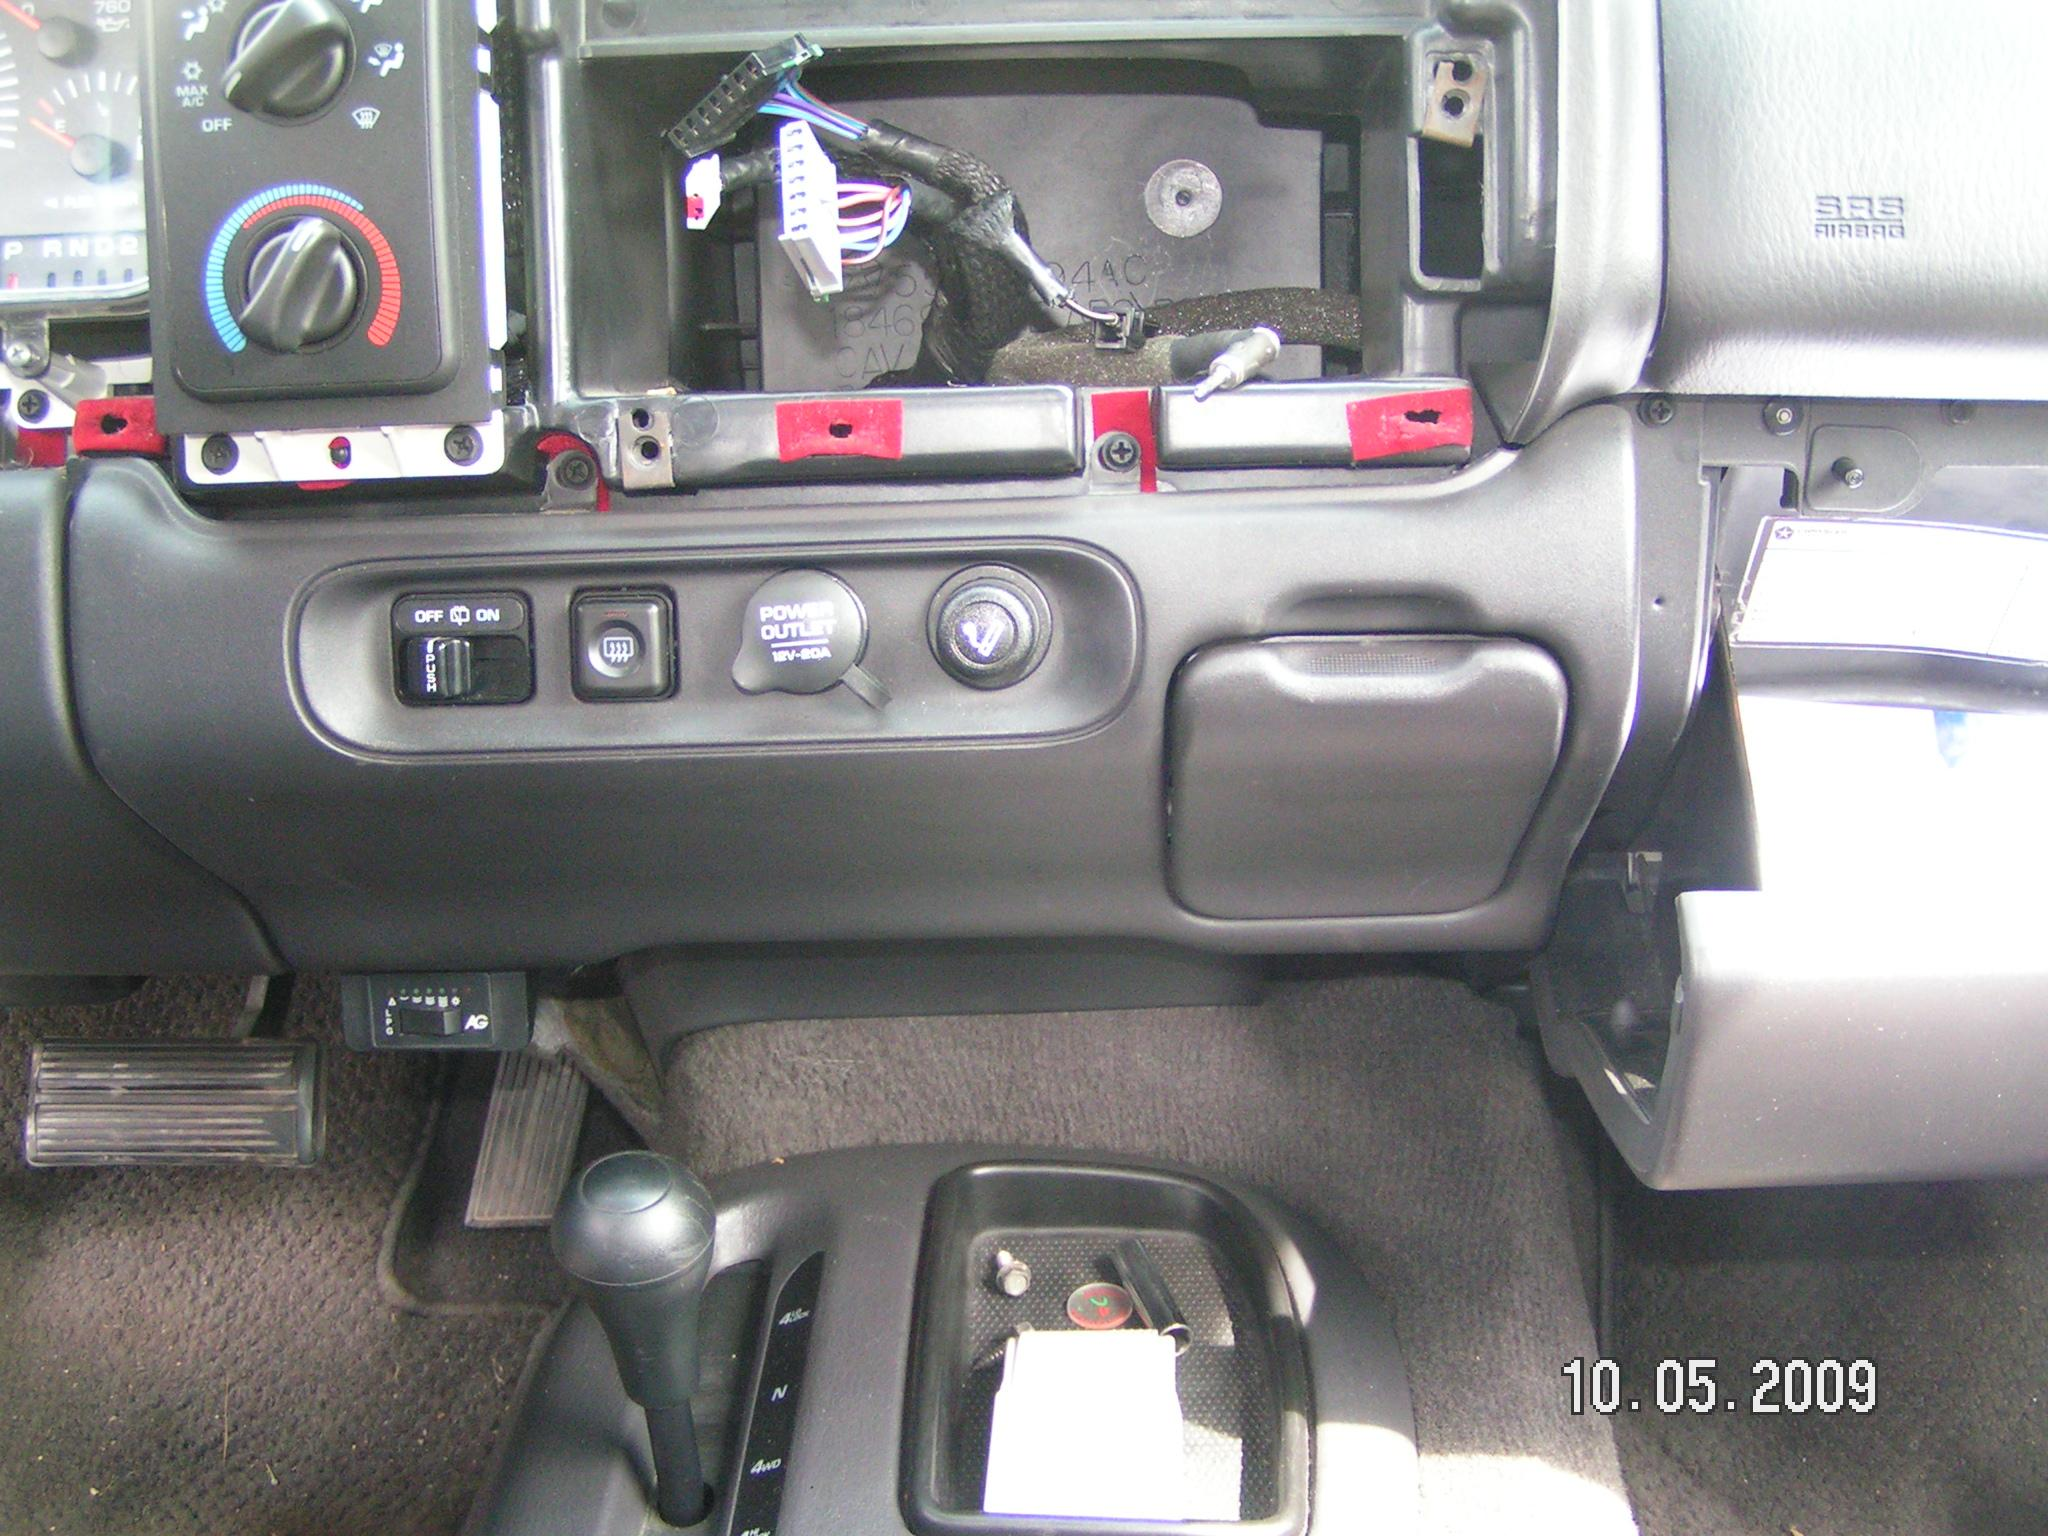 radio12 radio replacement stereo wiring diagram 1999 dodge dakota at panicattacktreatment.co